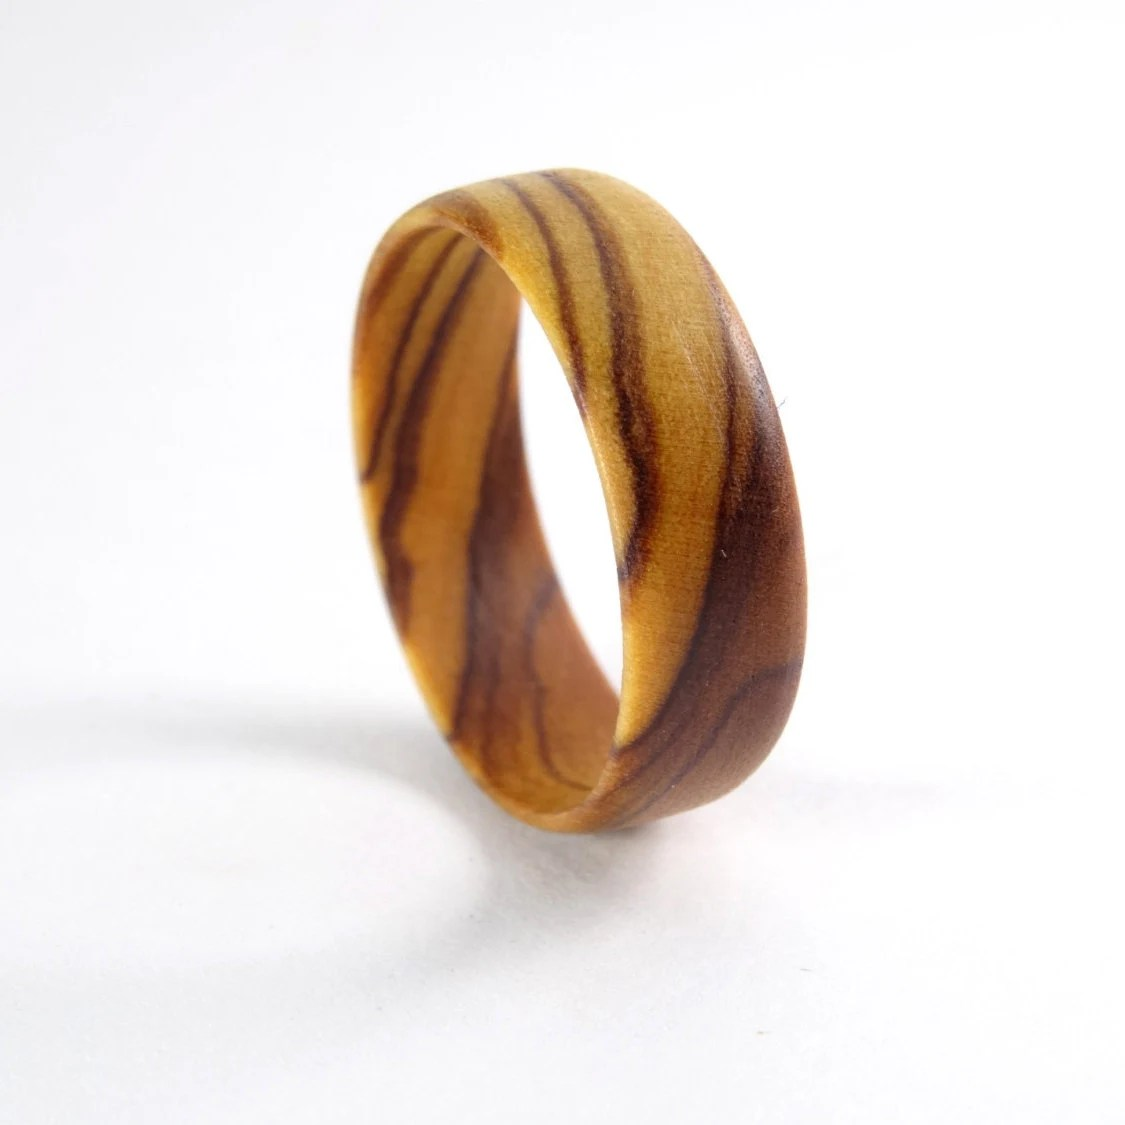 Olive Wood Ring  Wooden Ring  Wooden By Deschosesenbois